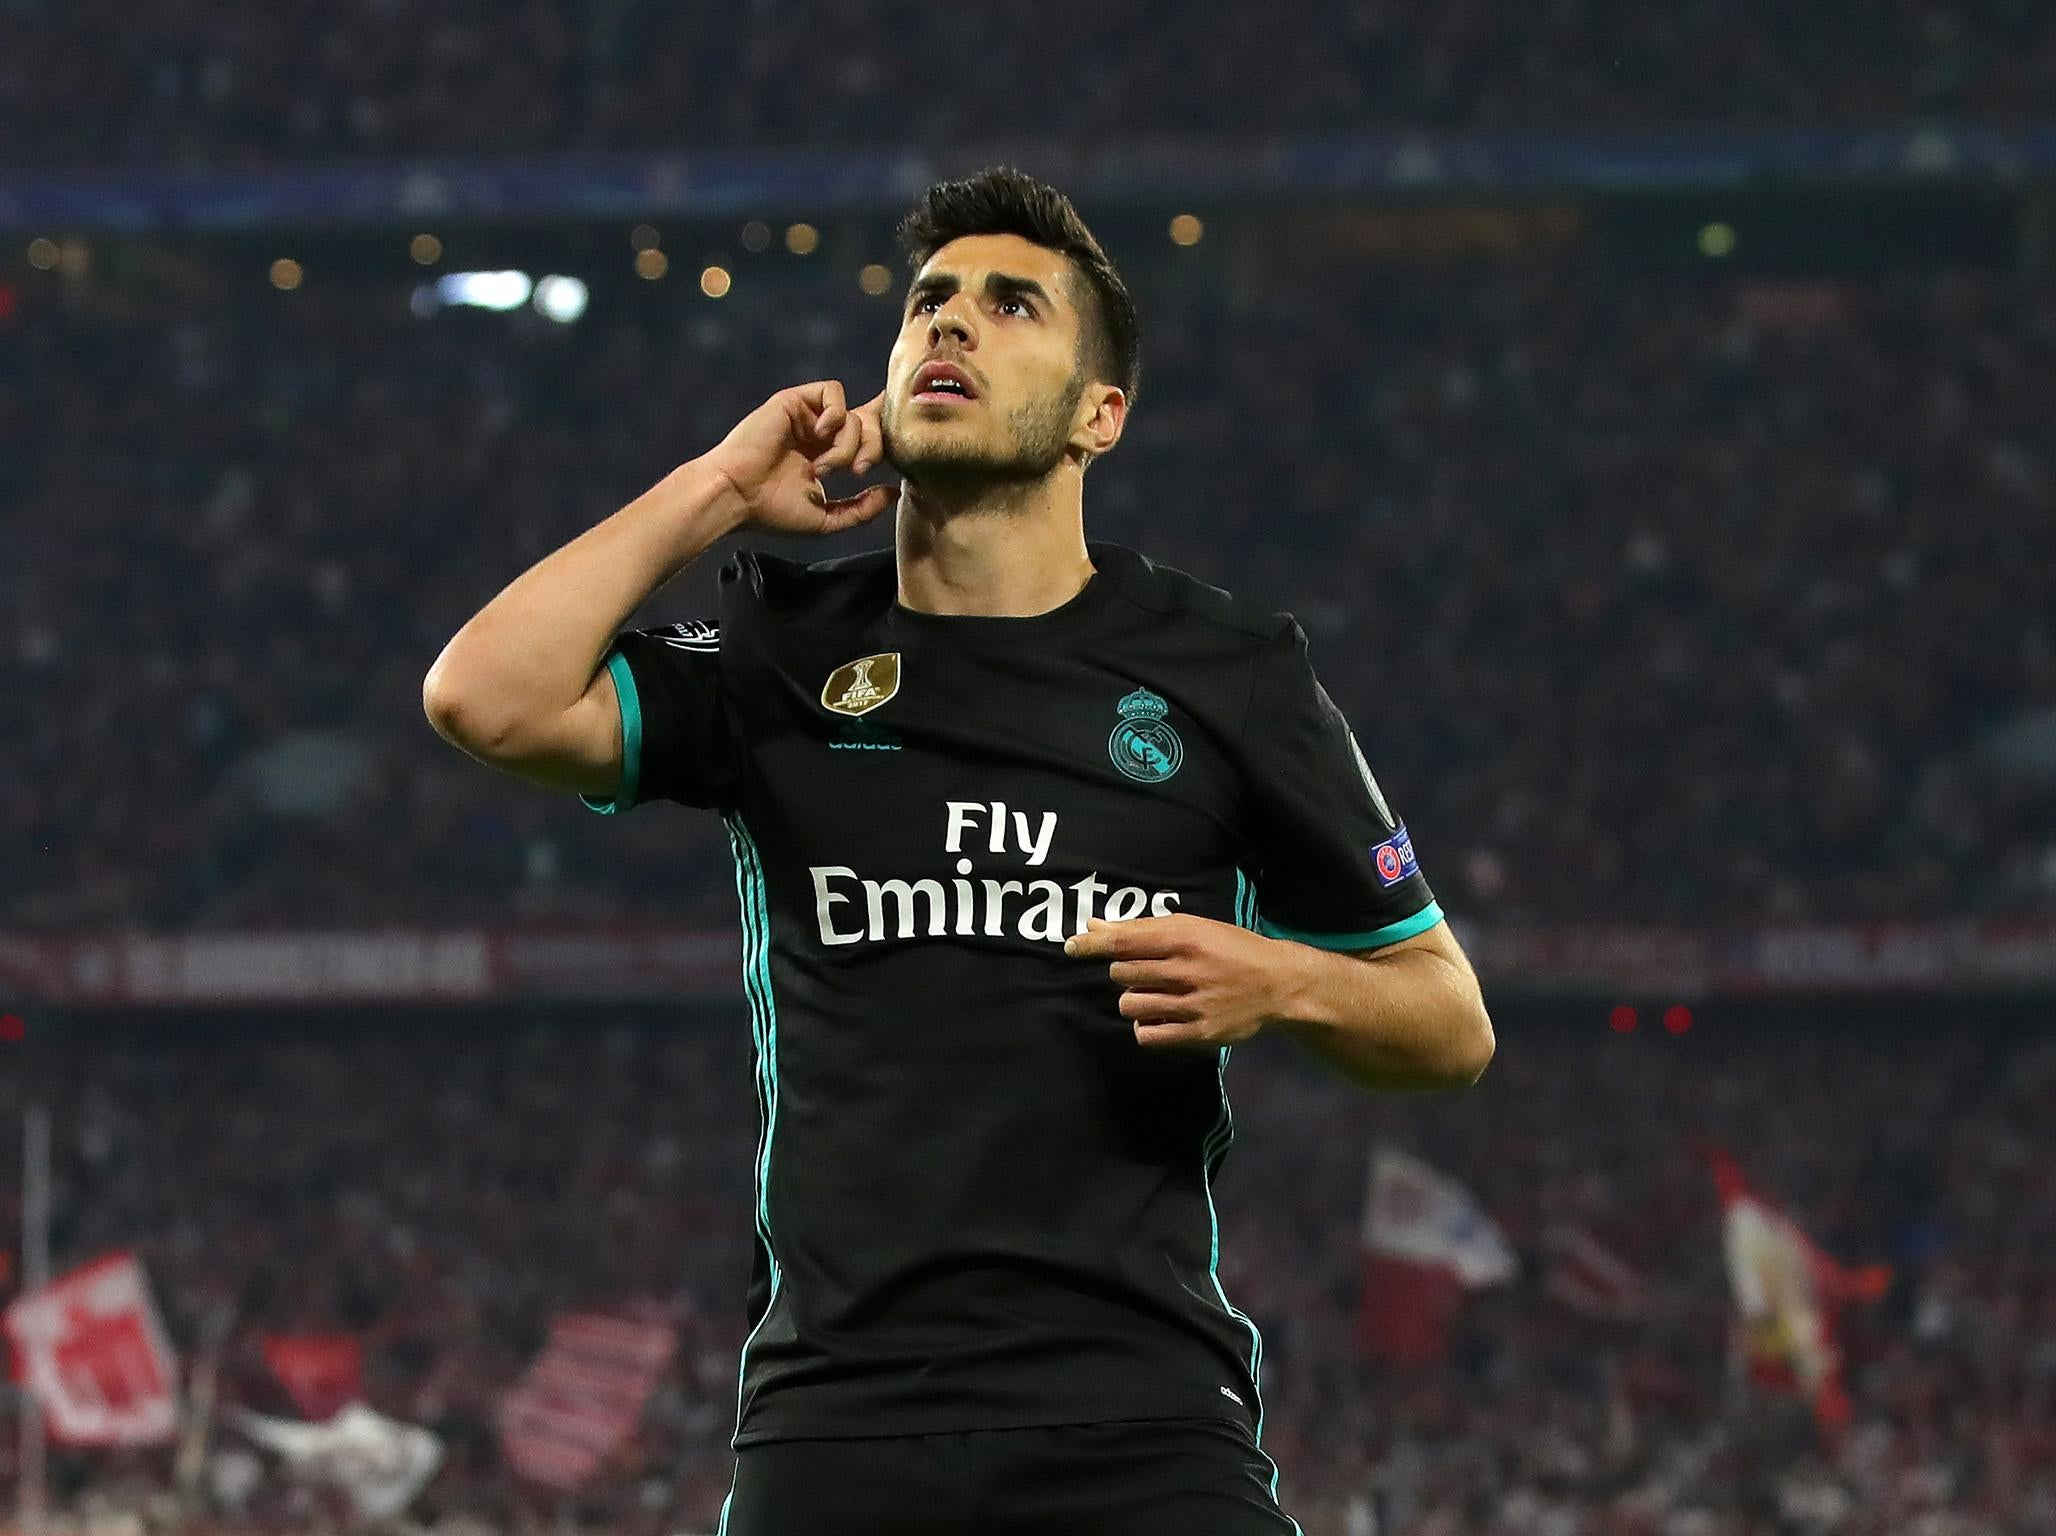 724d31a668e Marco Asensio the hero as Real Madrid exploit Bayern Munich mistakes to  take vital lead into second leg